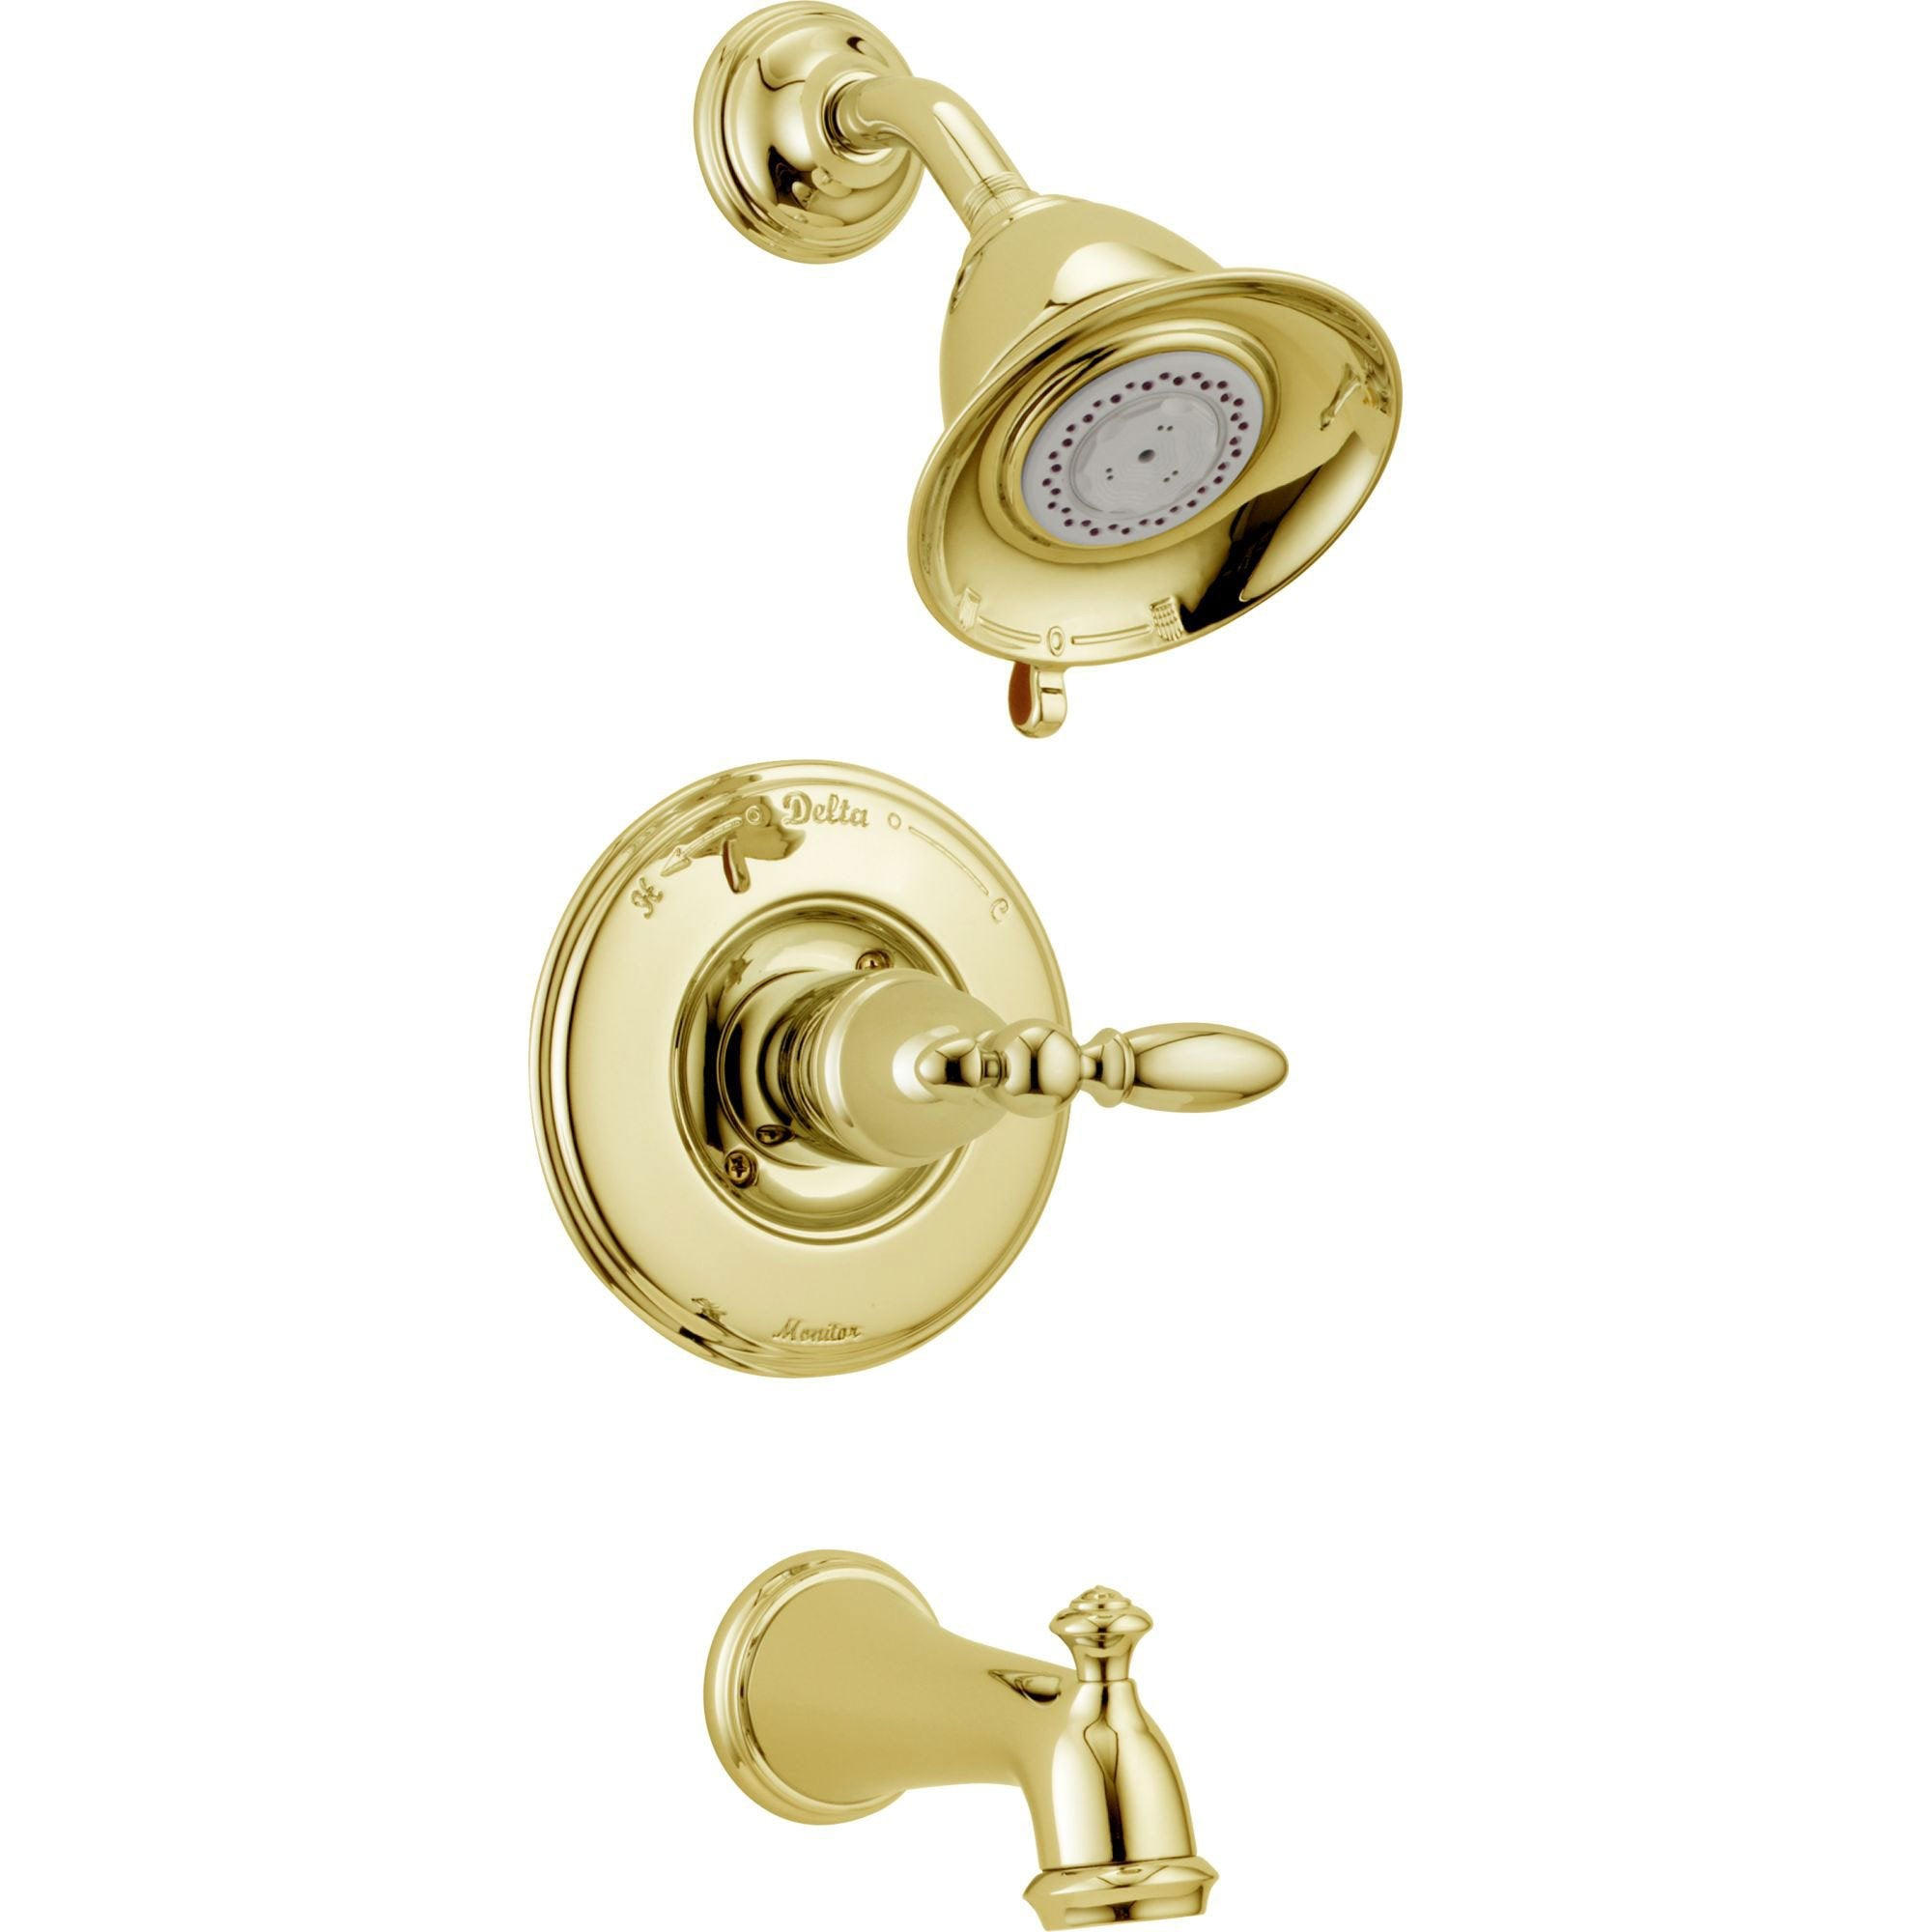 Delta Traditional Victorian Polished Brass Finish 14 Series Tub and Shower Faucet Combo INCLUDES Rough-in Valve and Single Lever Handle D1186V